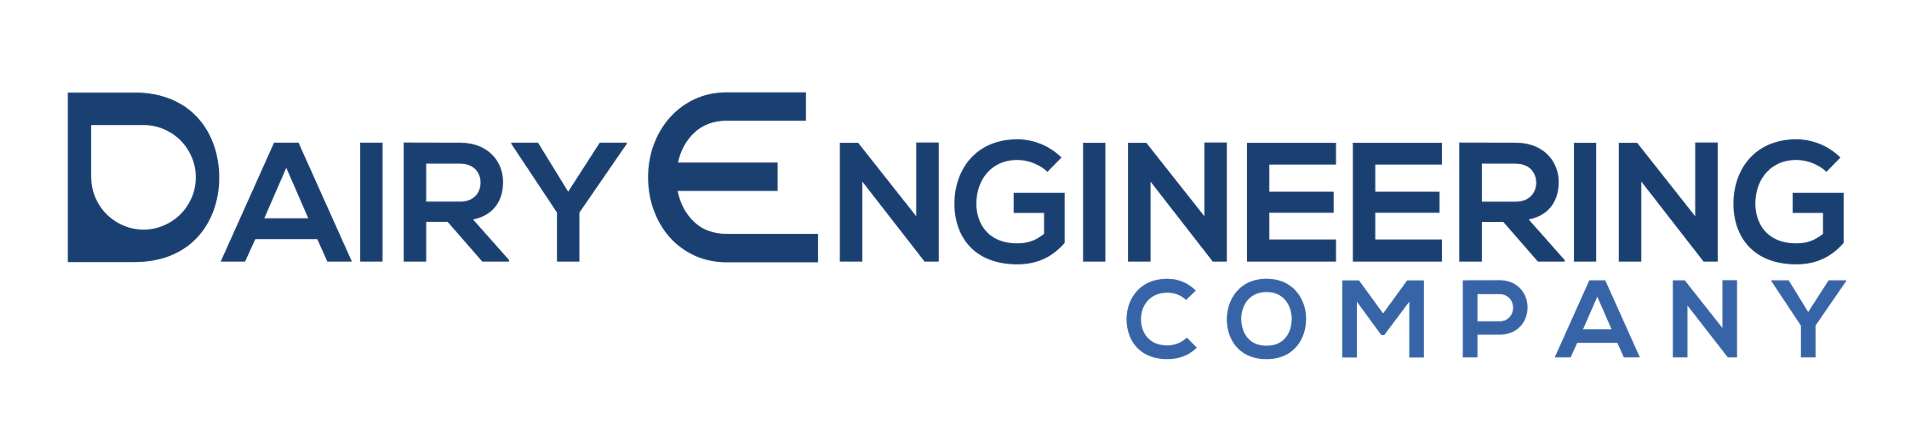 Dairy Engineering Company